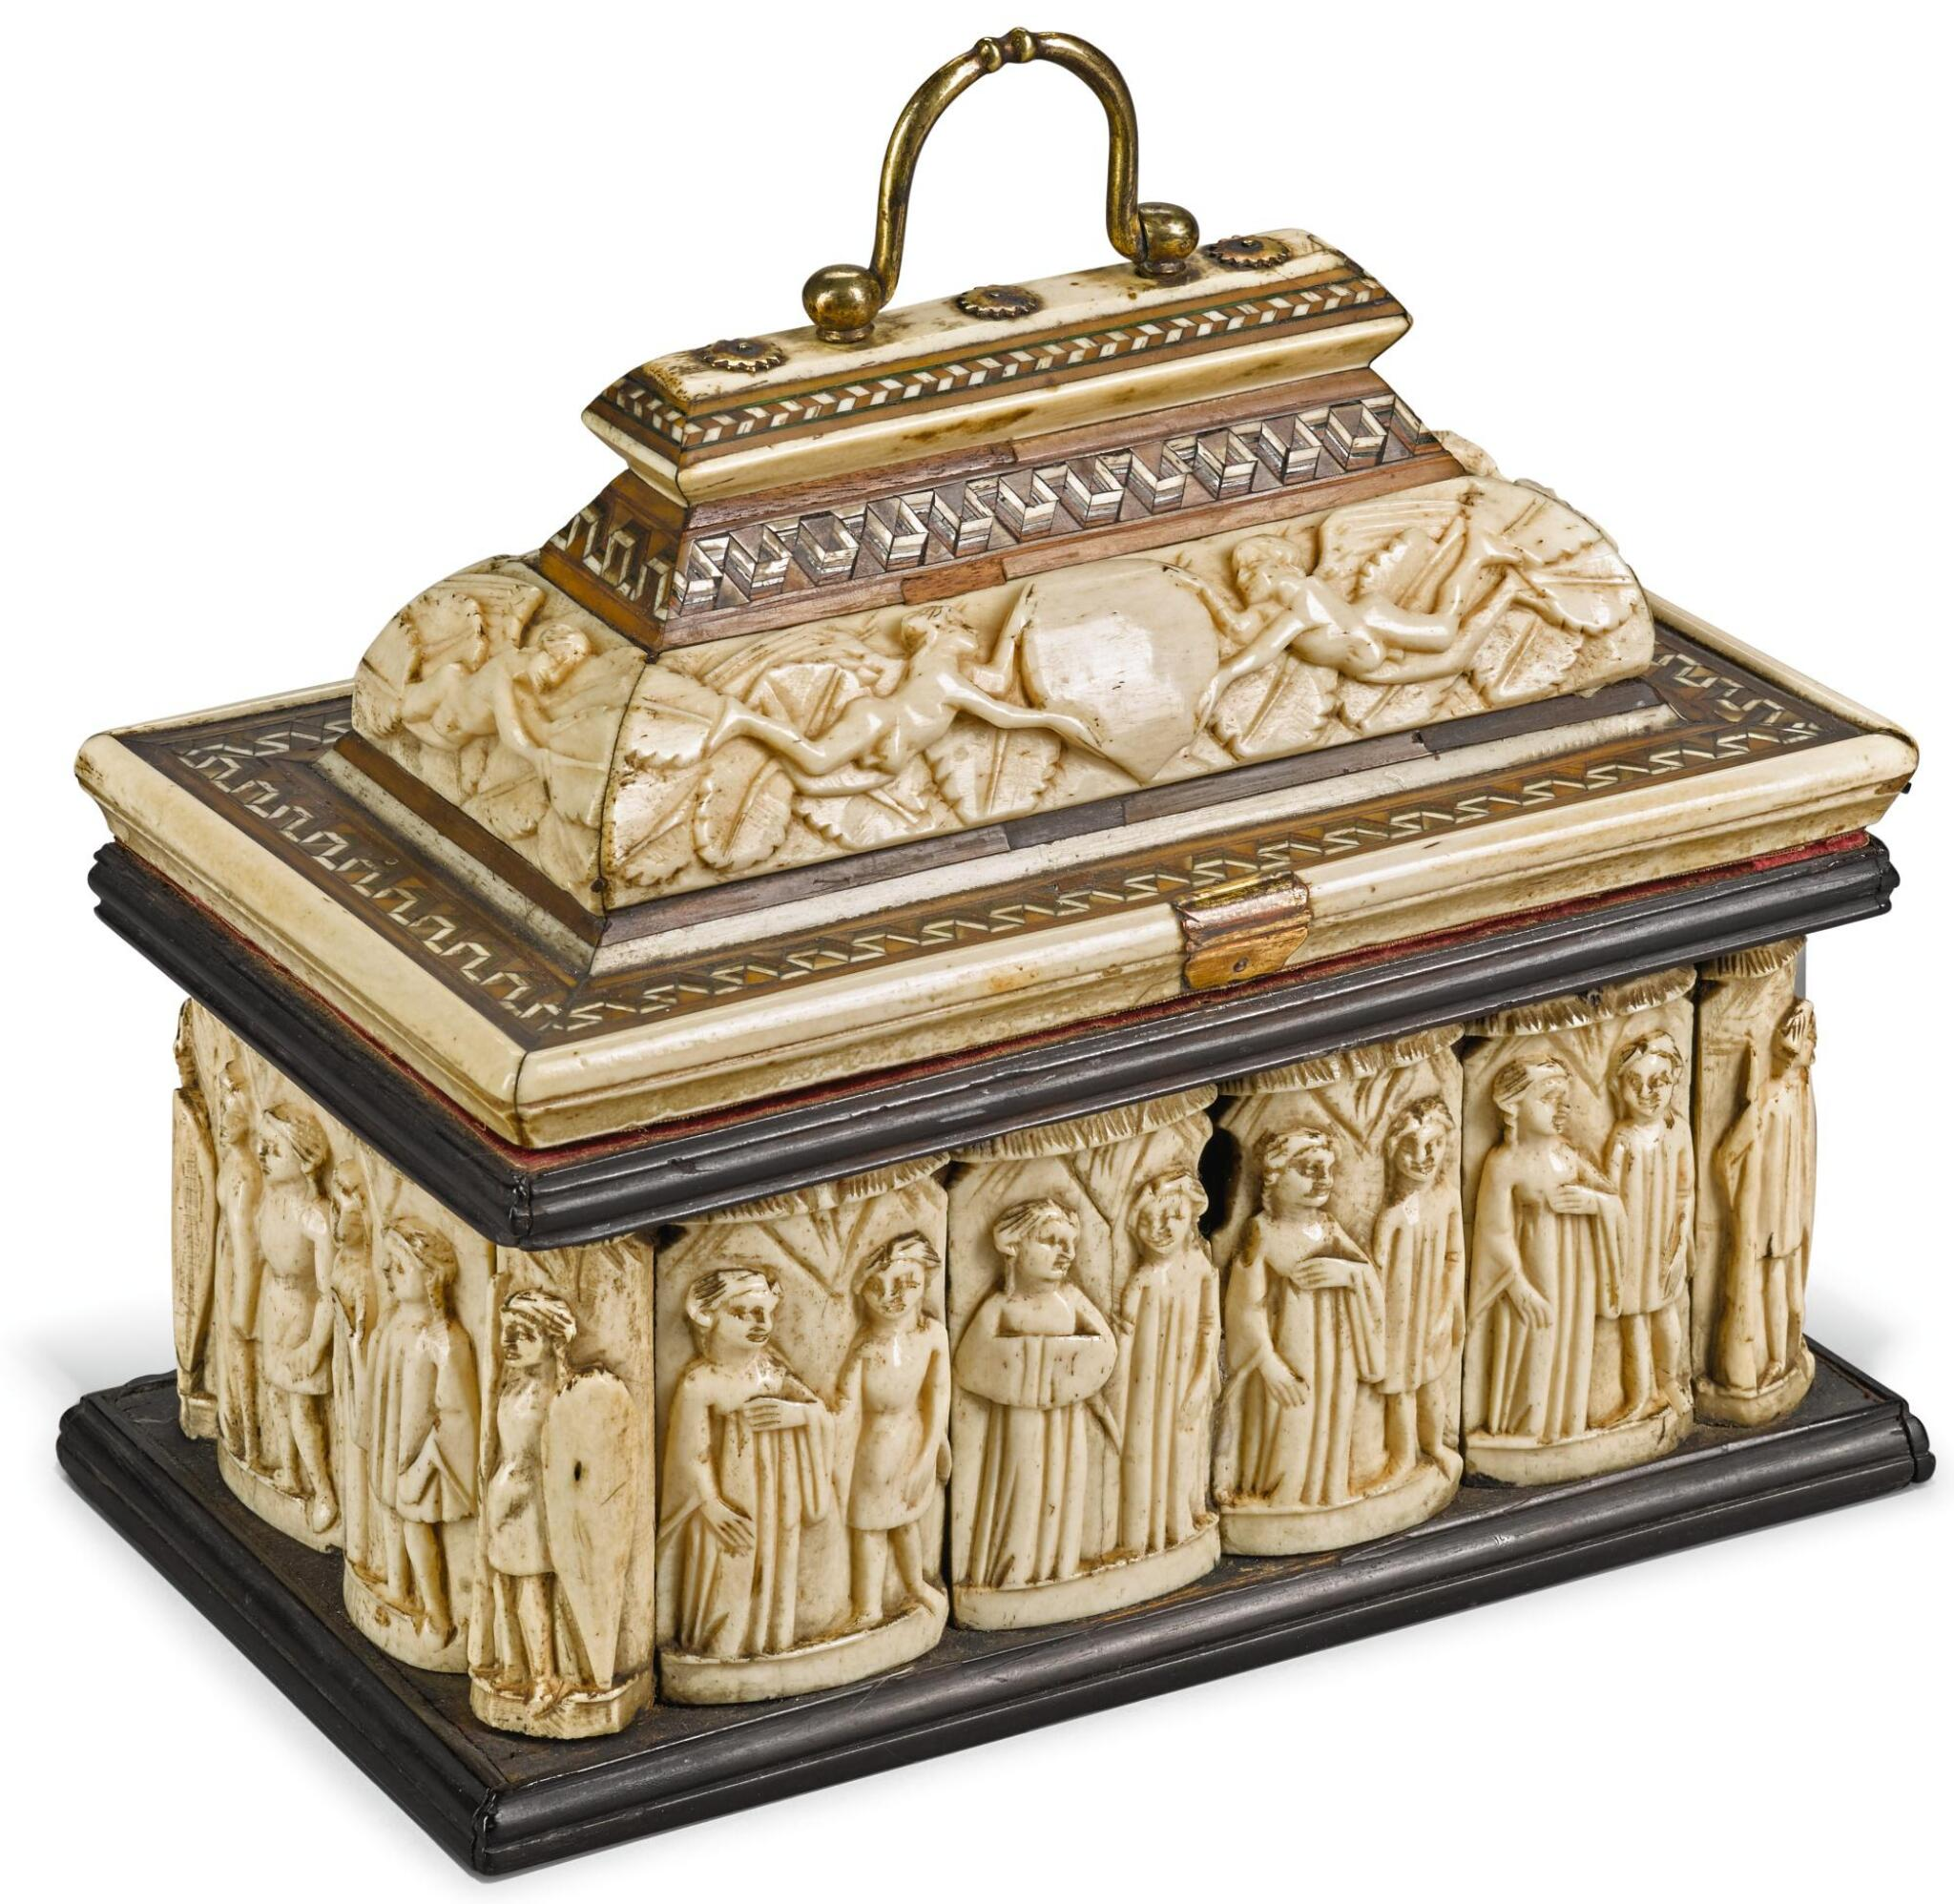 ITALIAN, PROBABLY VENICE, EARLY 15TH CENTURY | CASKET